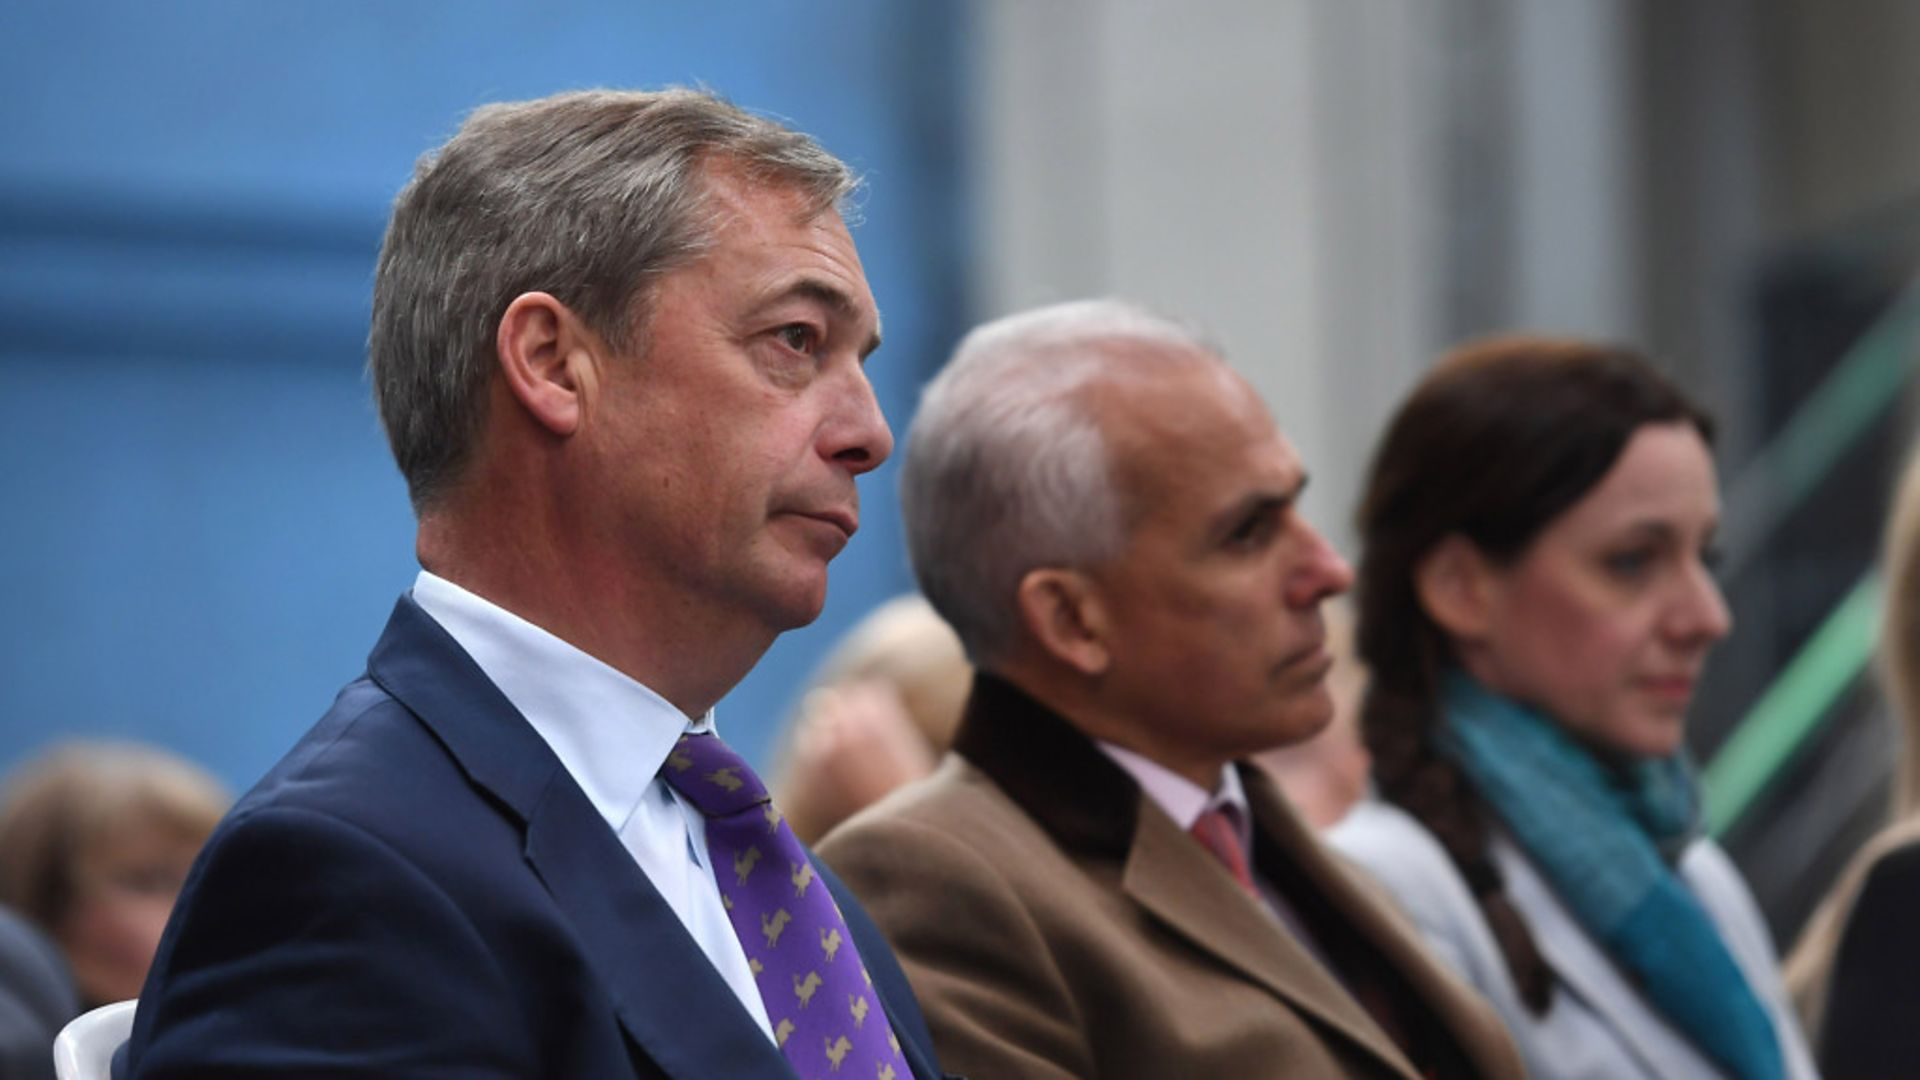 (left to right) Nigel Farage with former Brexit Party MEPs Ben Habib and Annunziata Rees-Mogg at the launch the European Parliament elections campaign in Coventry. - Credit: PA Wire/PA Images